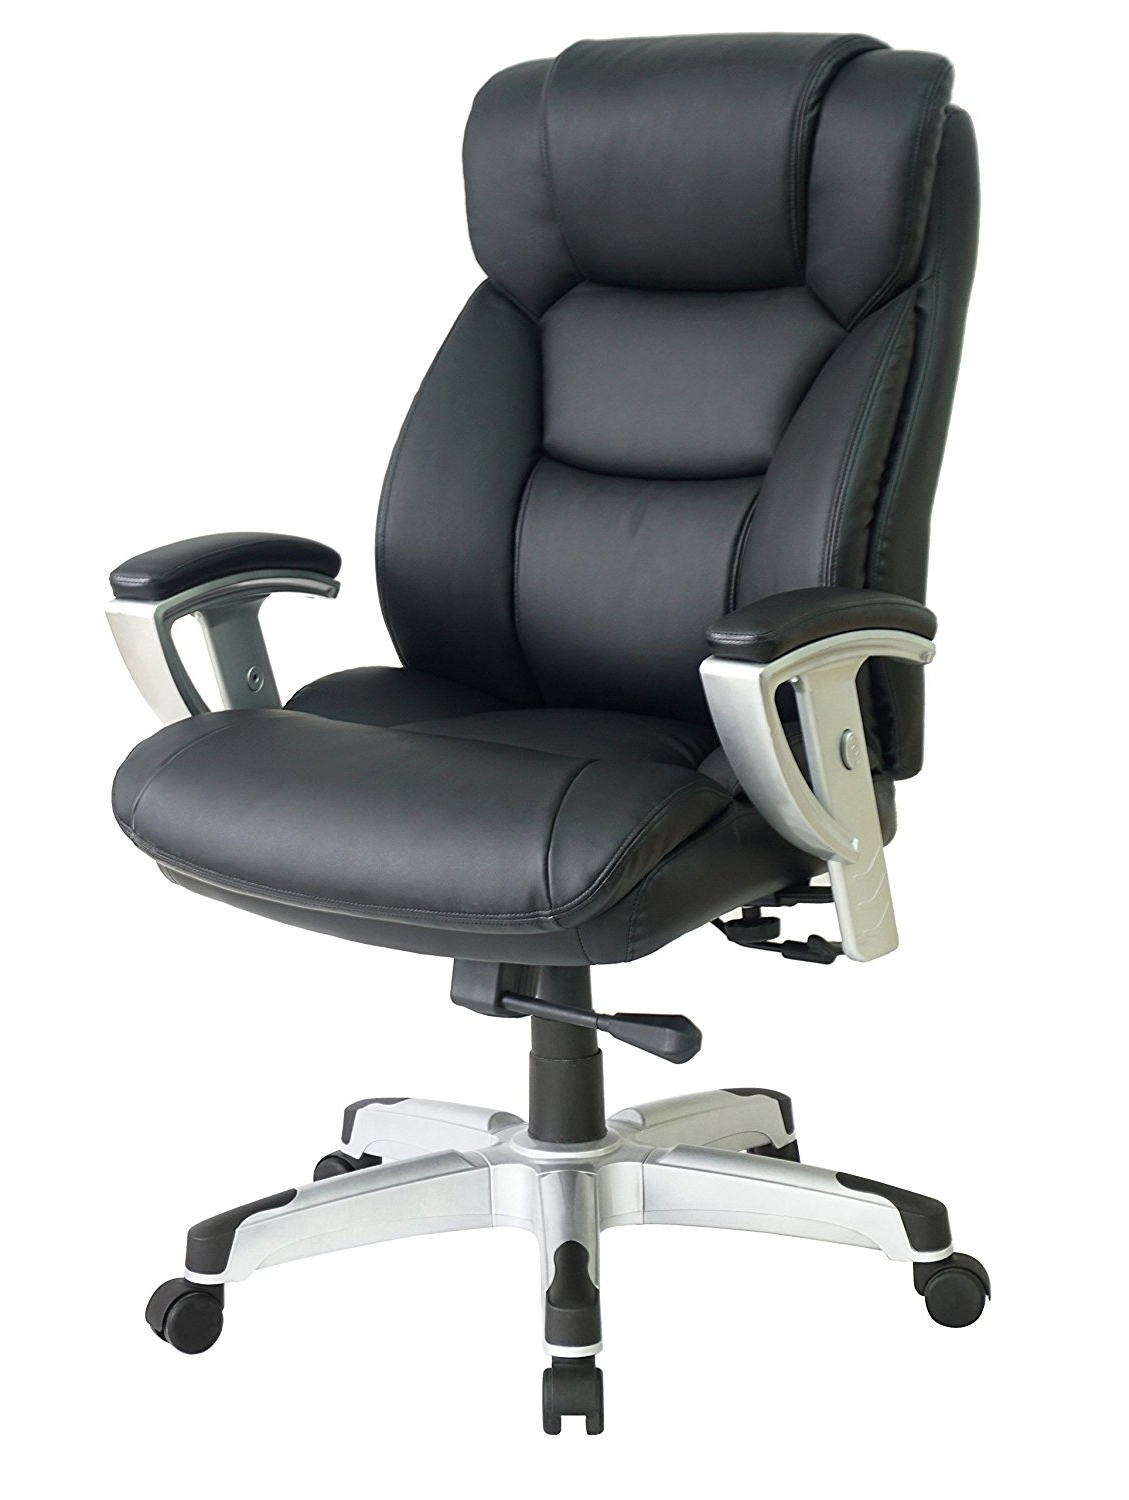 10 Big & Tall Office Chairs For Extra Large Comfort Regarding 2019 Xl Executive Office Chairs (View 5 of 20)